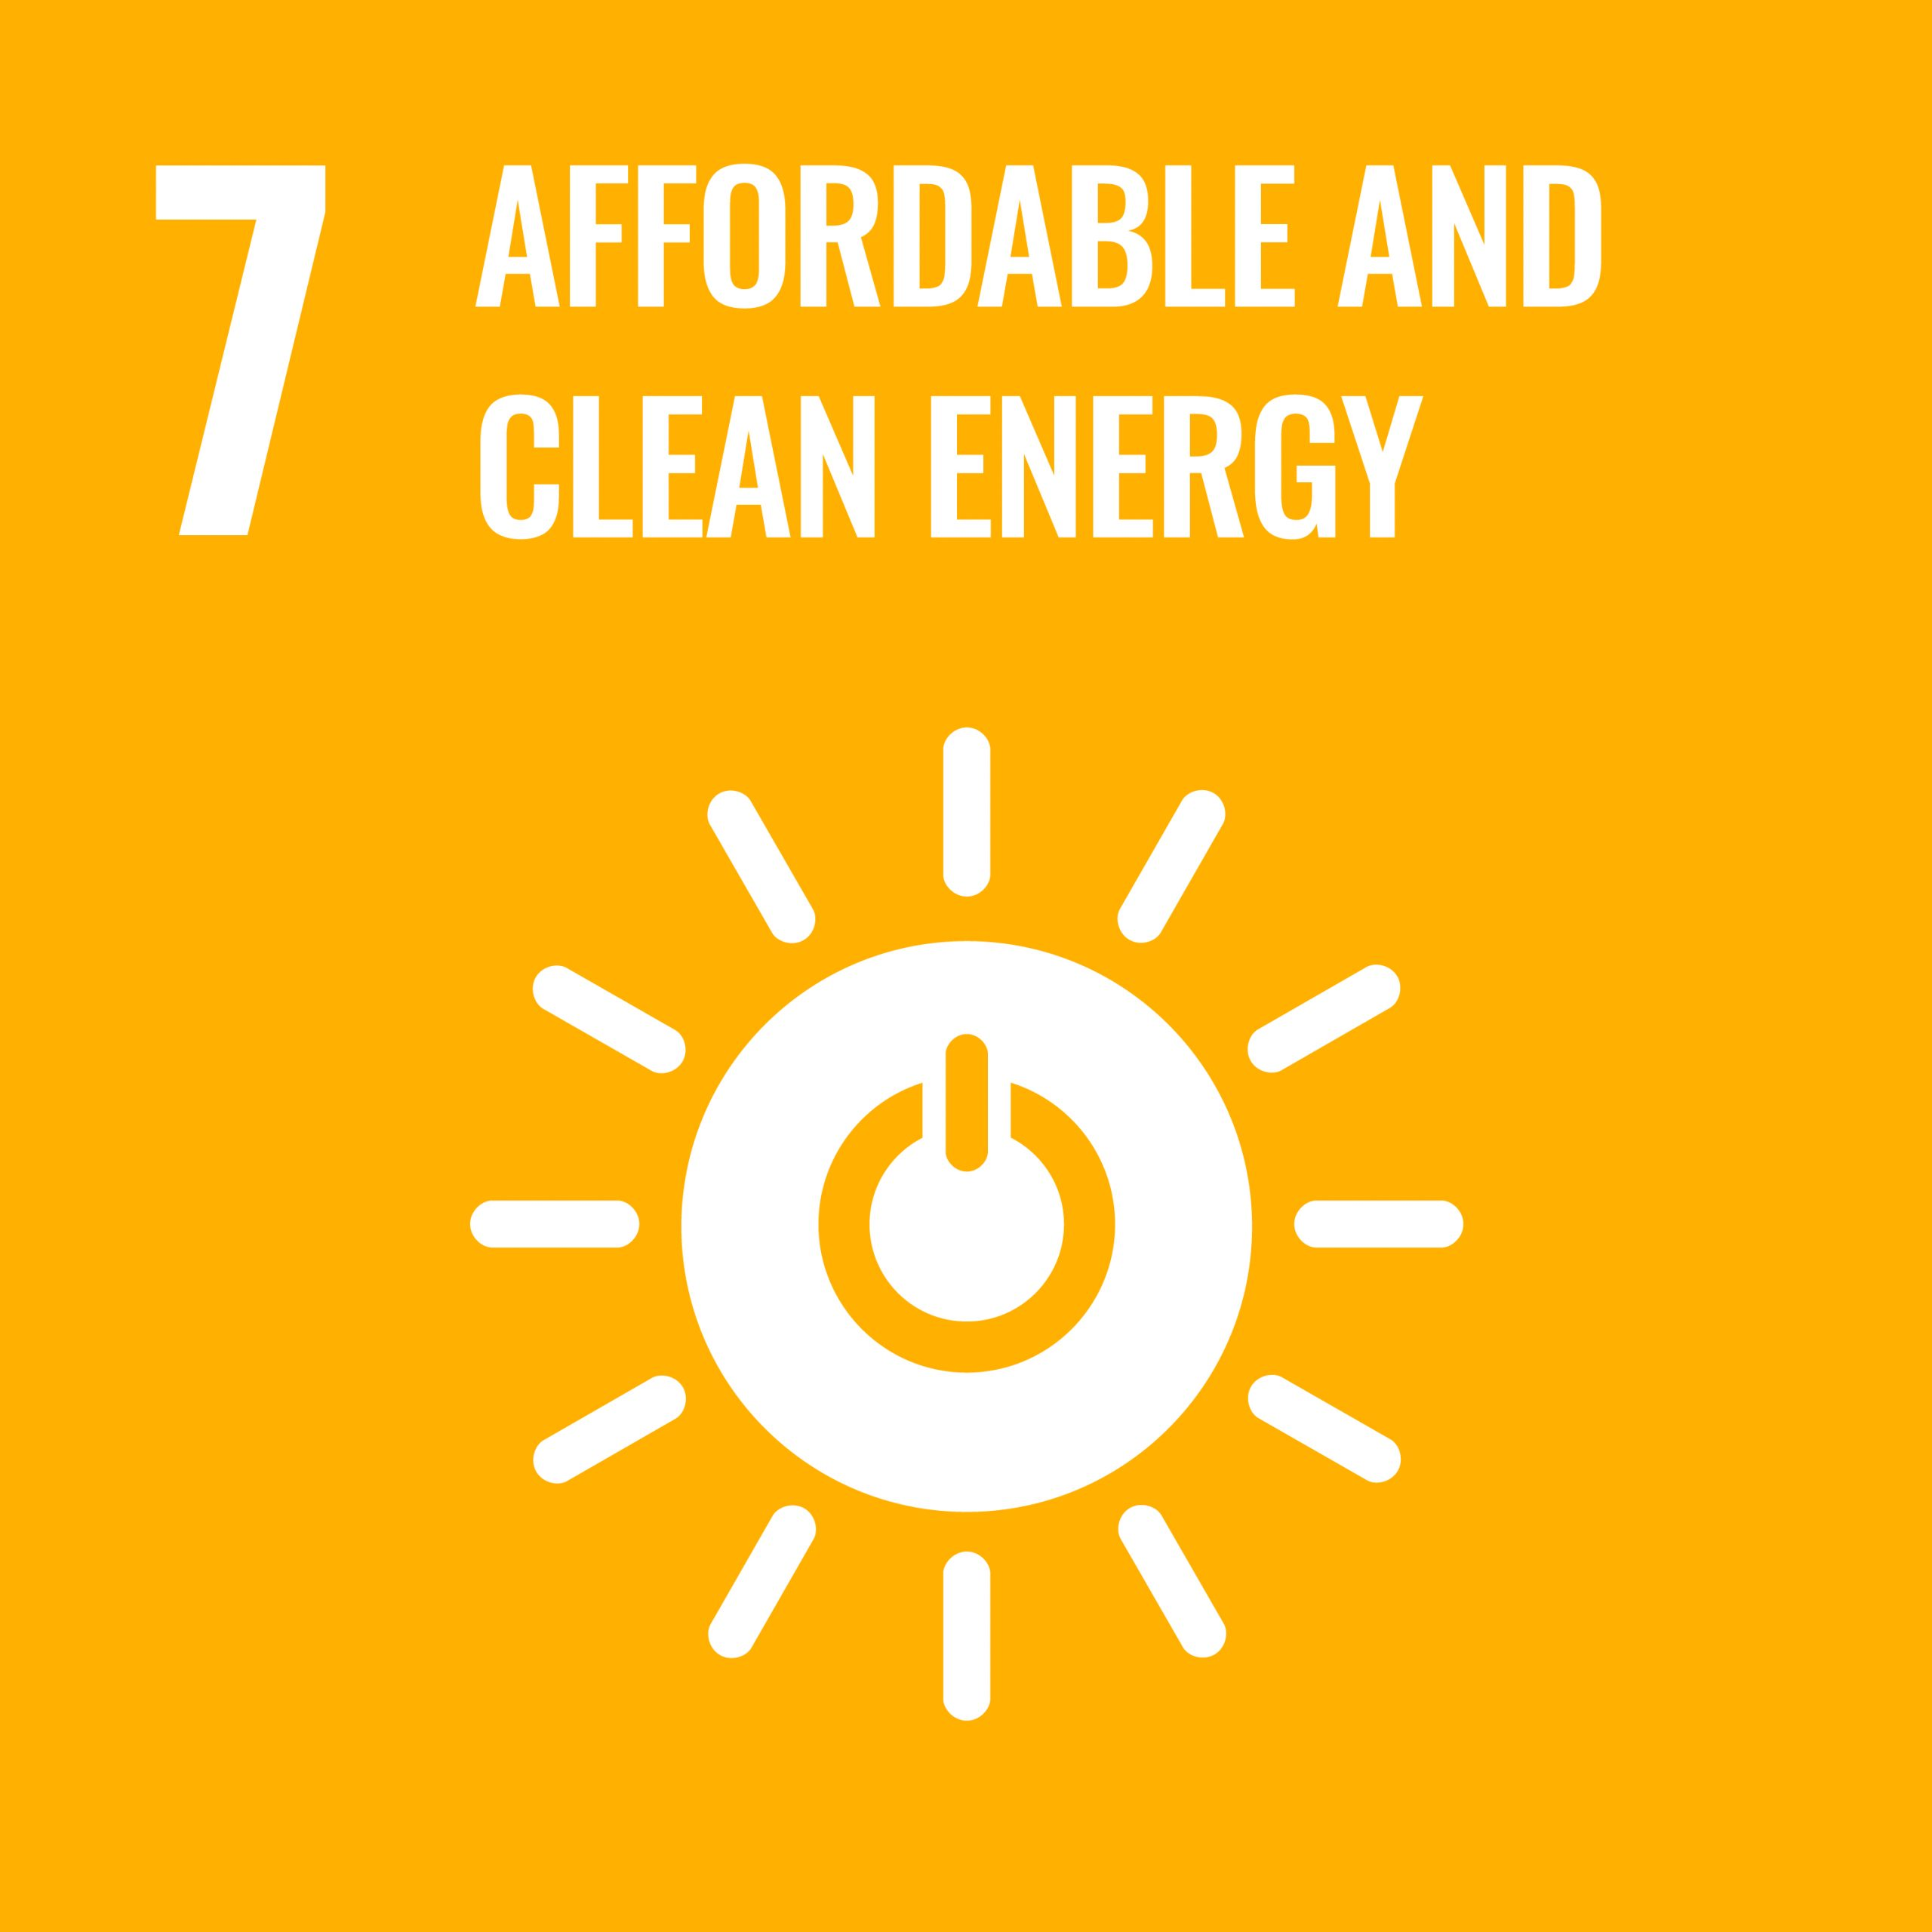 Affordable and clean energy - SDG 7